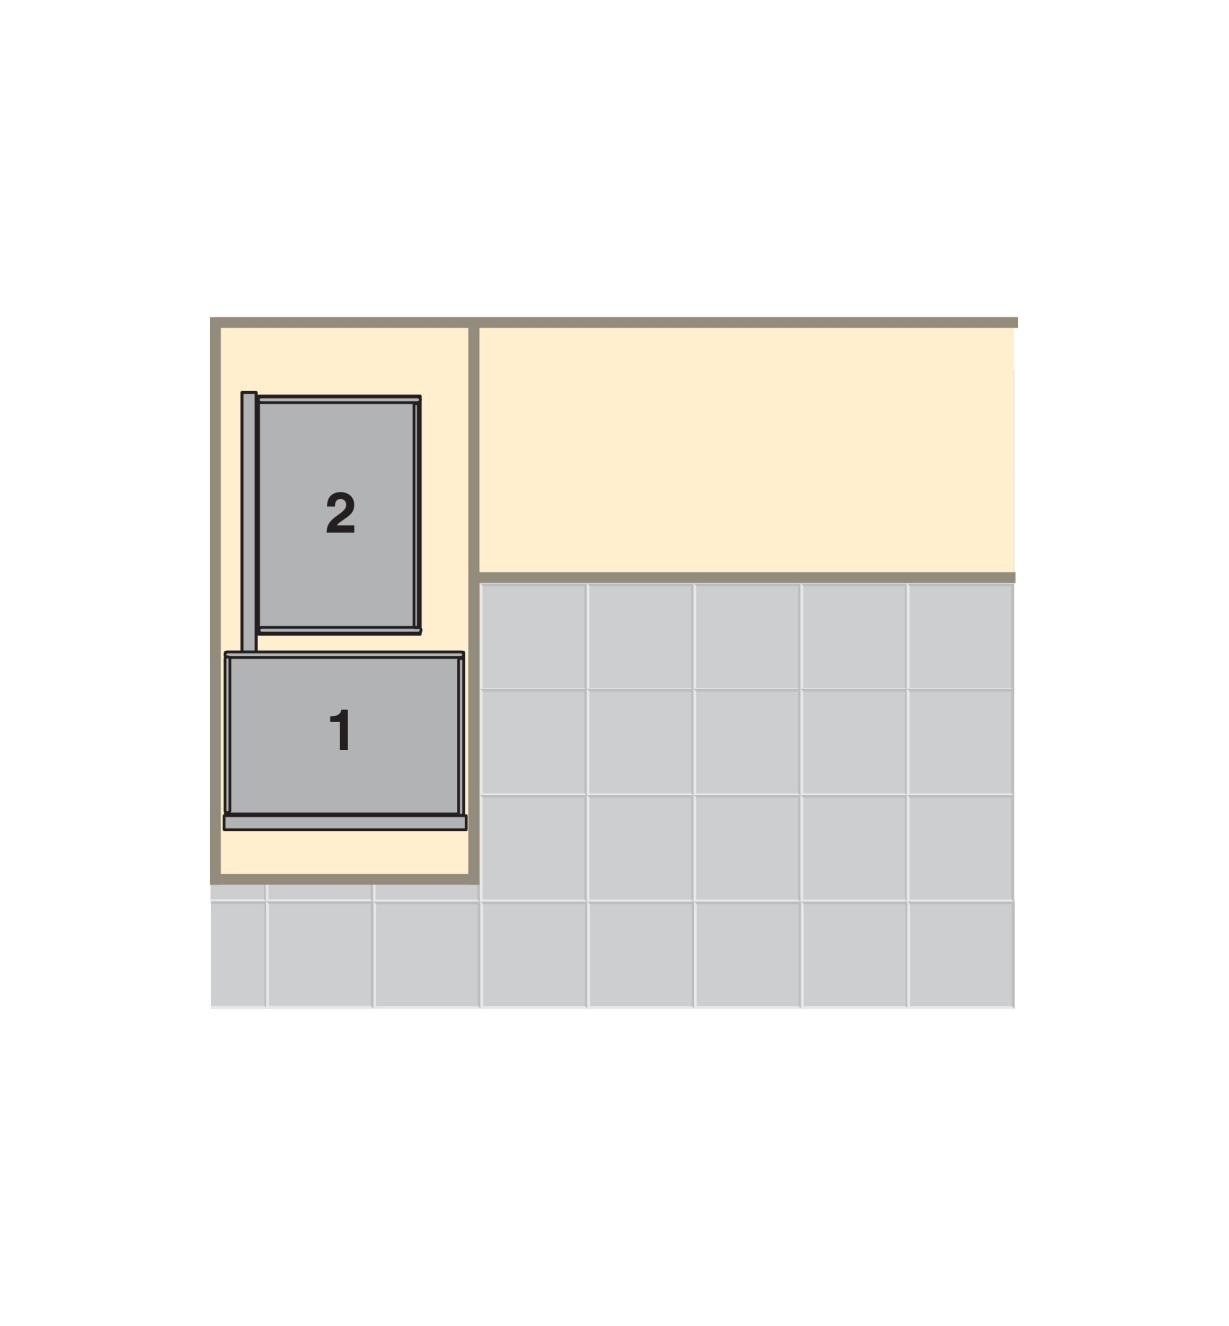 Top-view diagram shows blind-corner unit installed in a cabinet